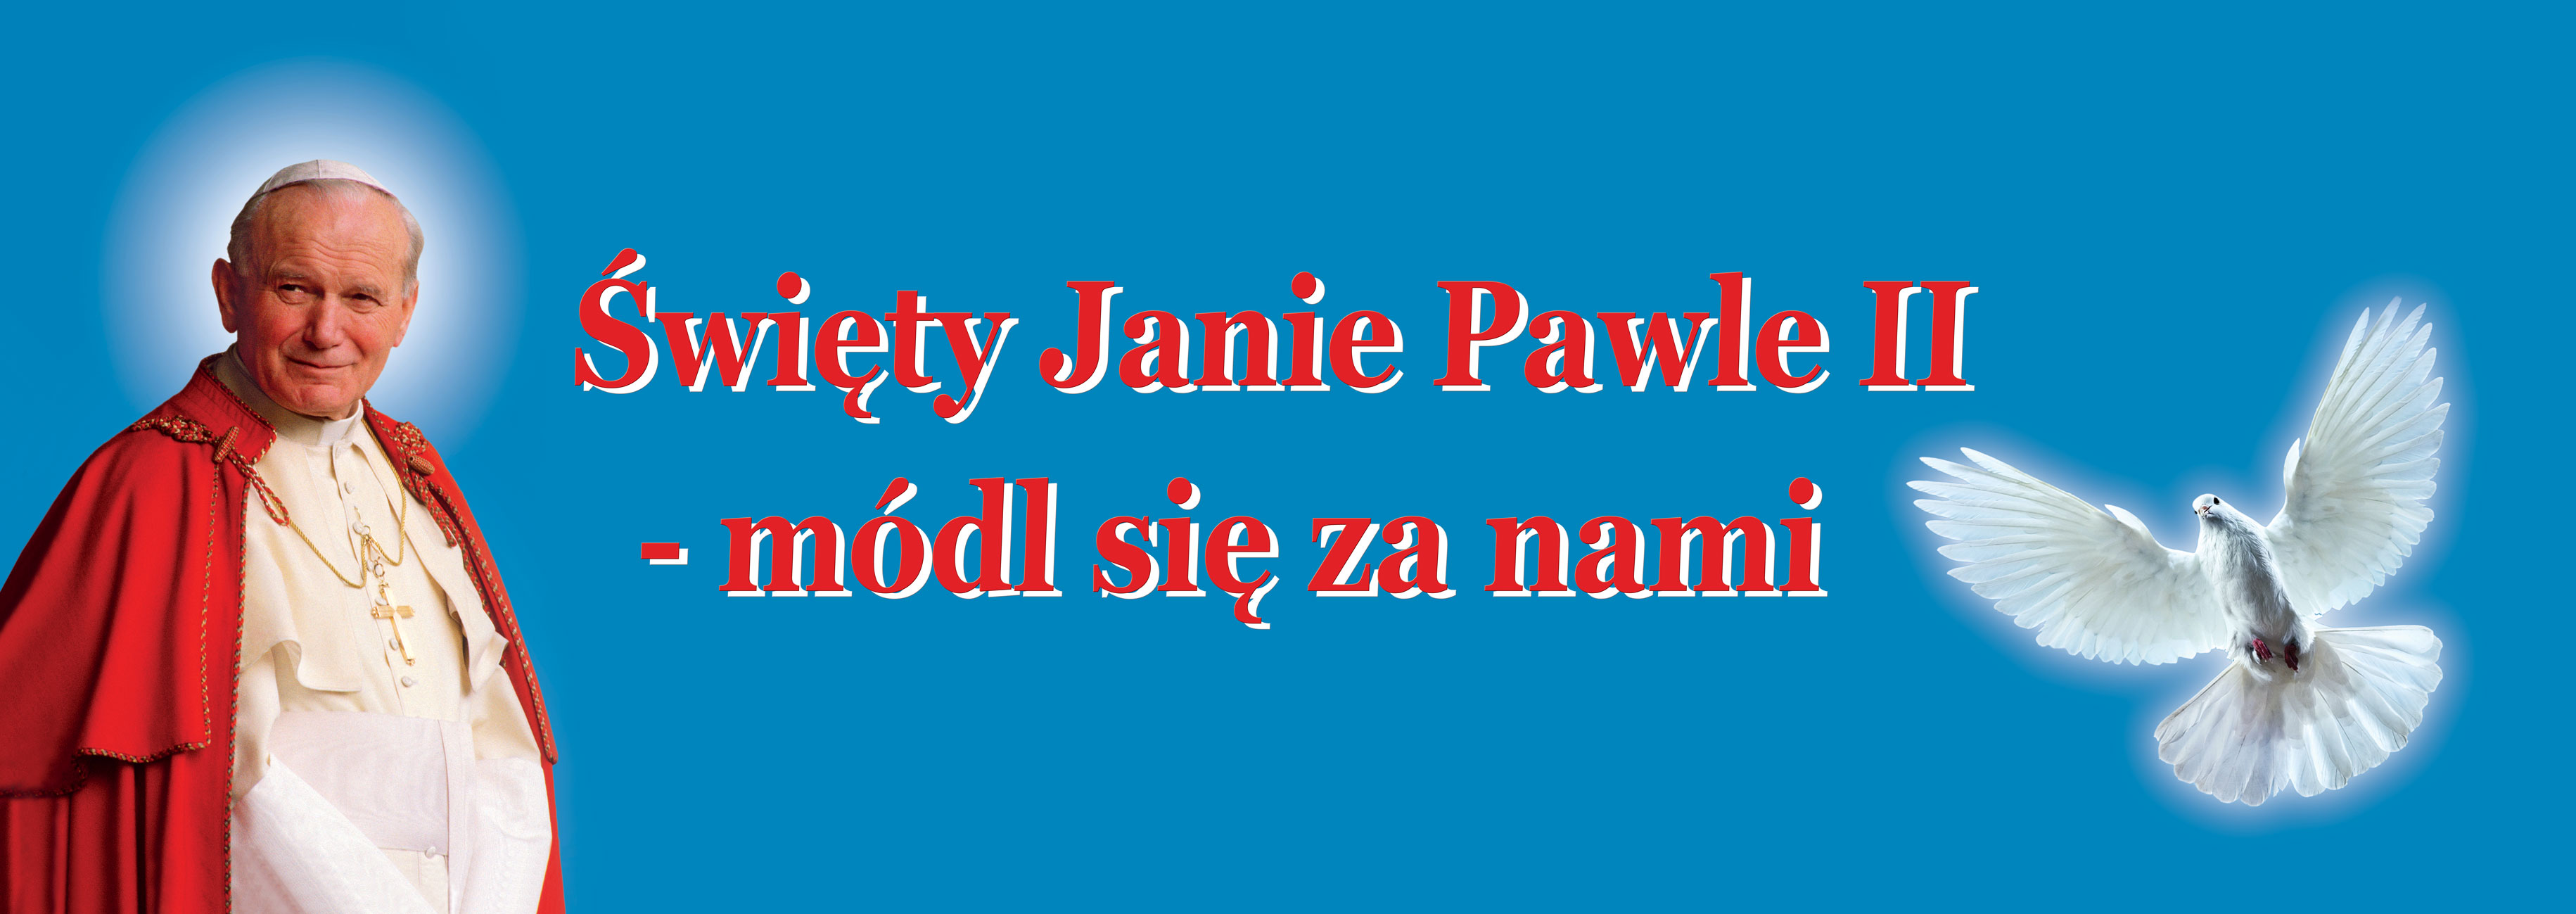 Swiety Jan Pawel II - Baner do kosciola